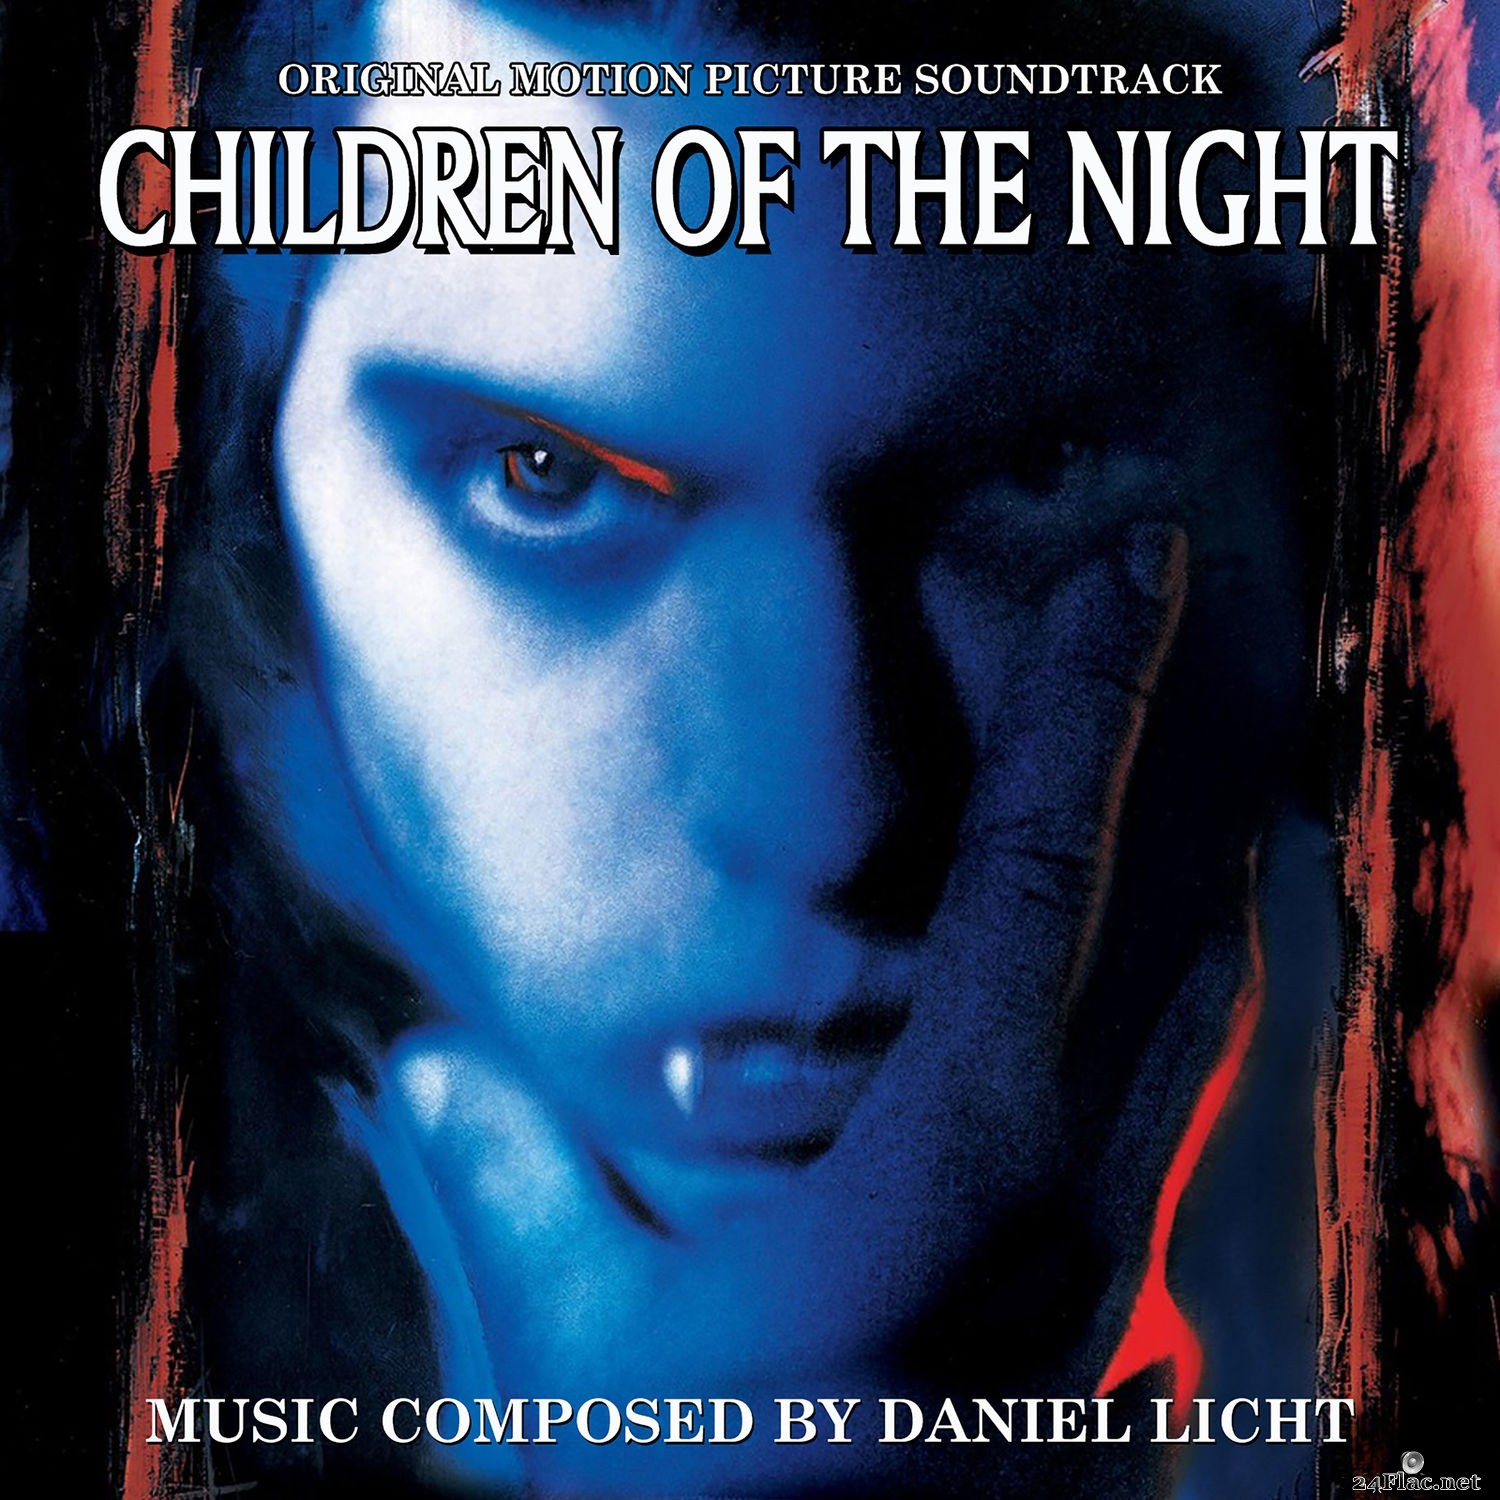 Daniel Licht - Children of the Night (Original Morion Picture Soundtrack) (2021) Hi-Res